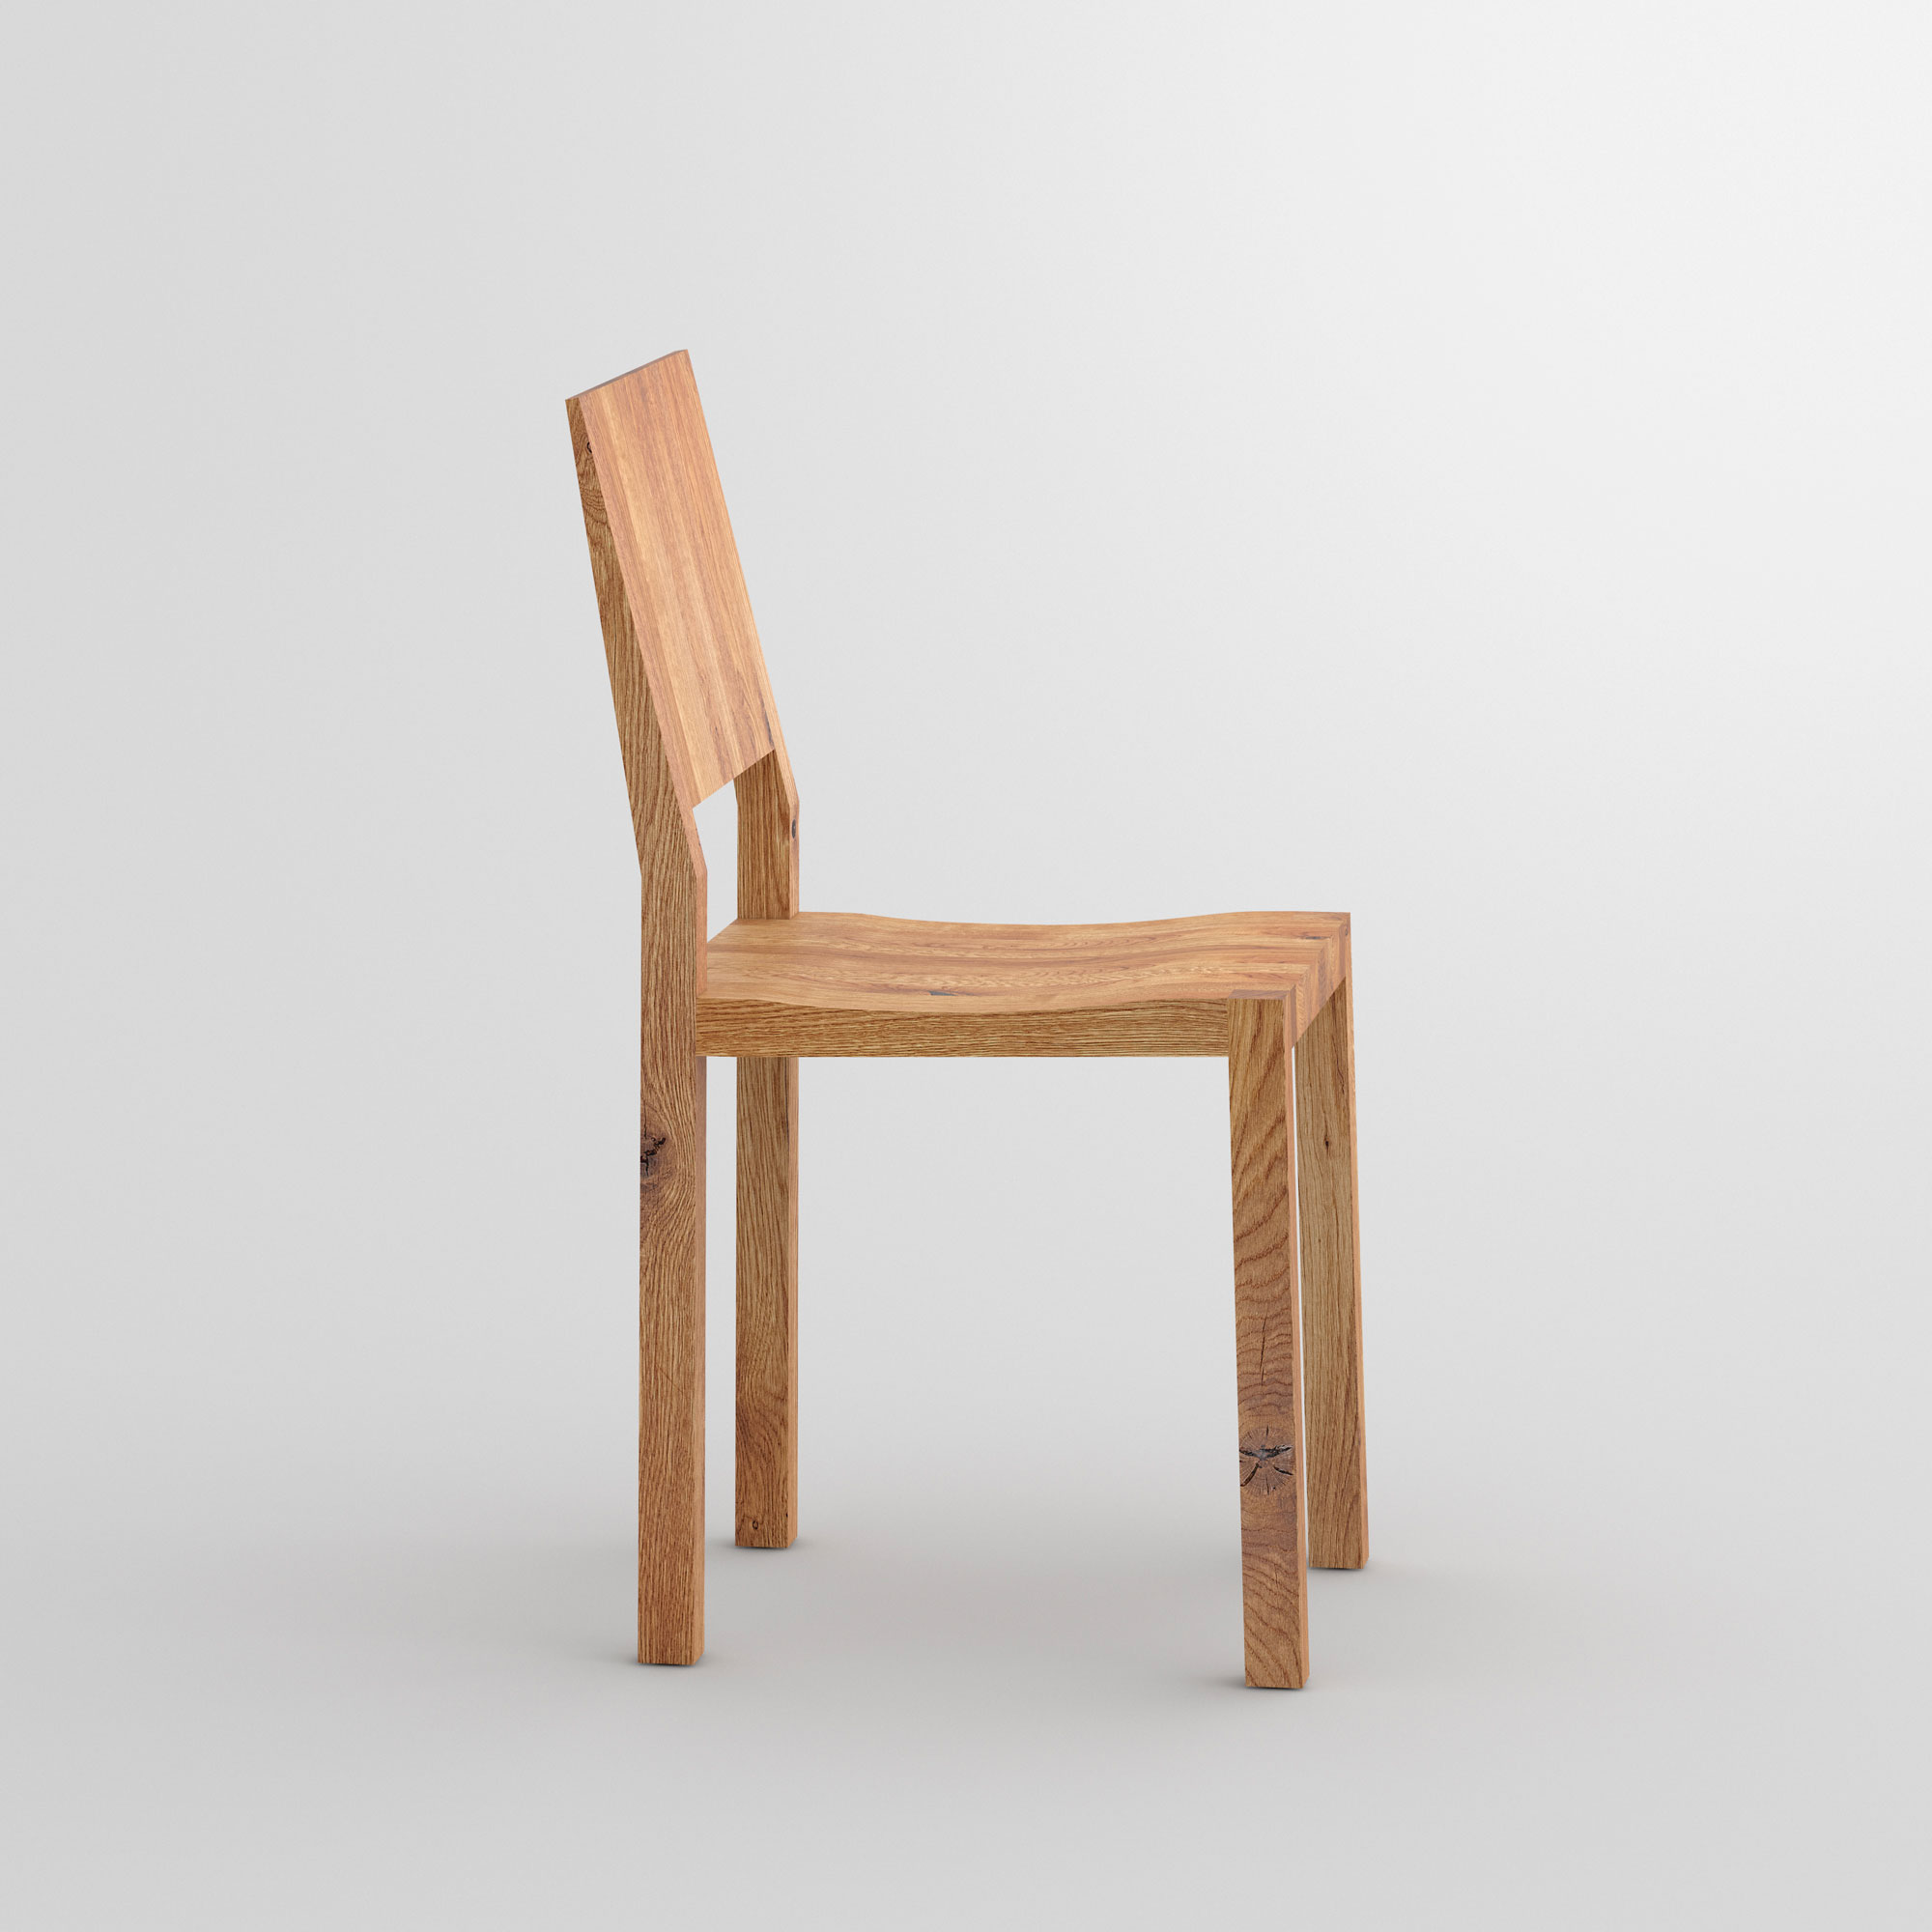 Solid Wood Chair TAU cam4 custom made in solid wood by vitamin design